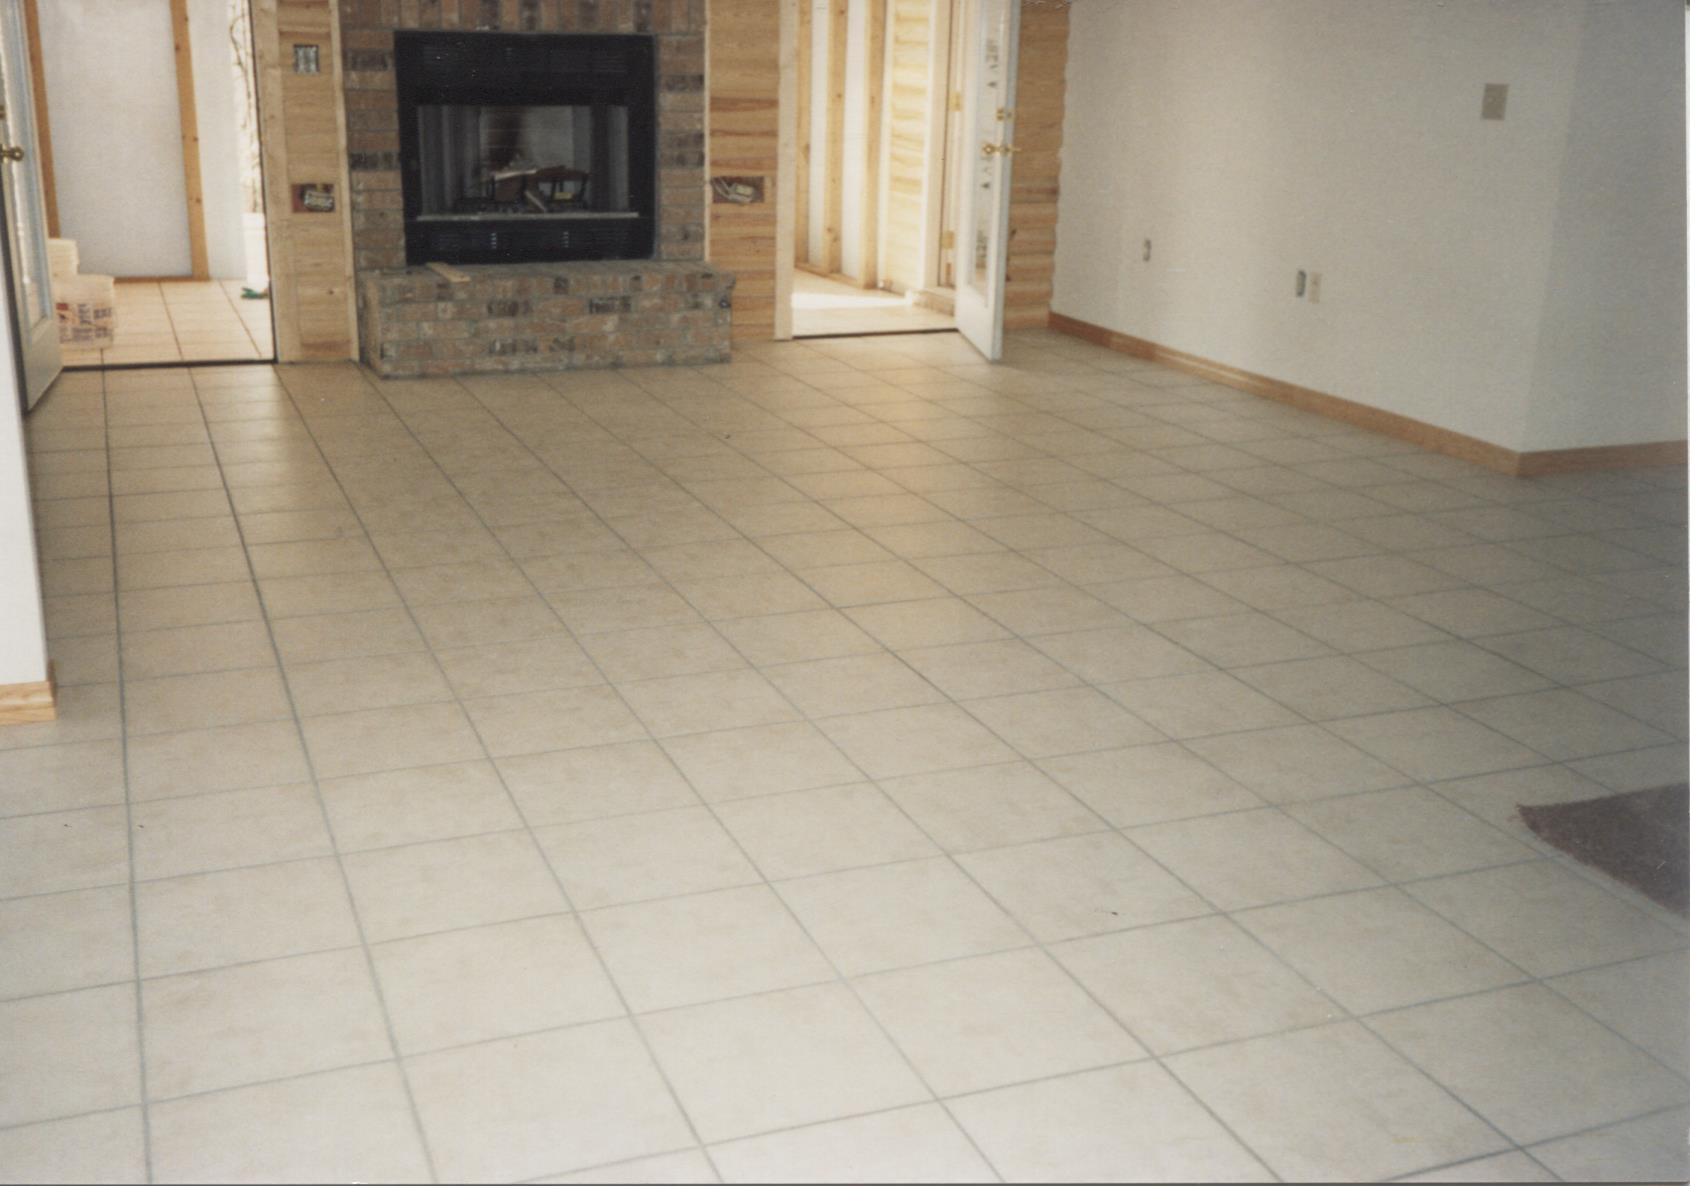 Messina stone tile floors and more for Floor and more